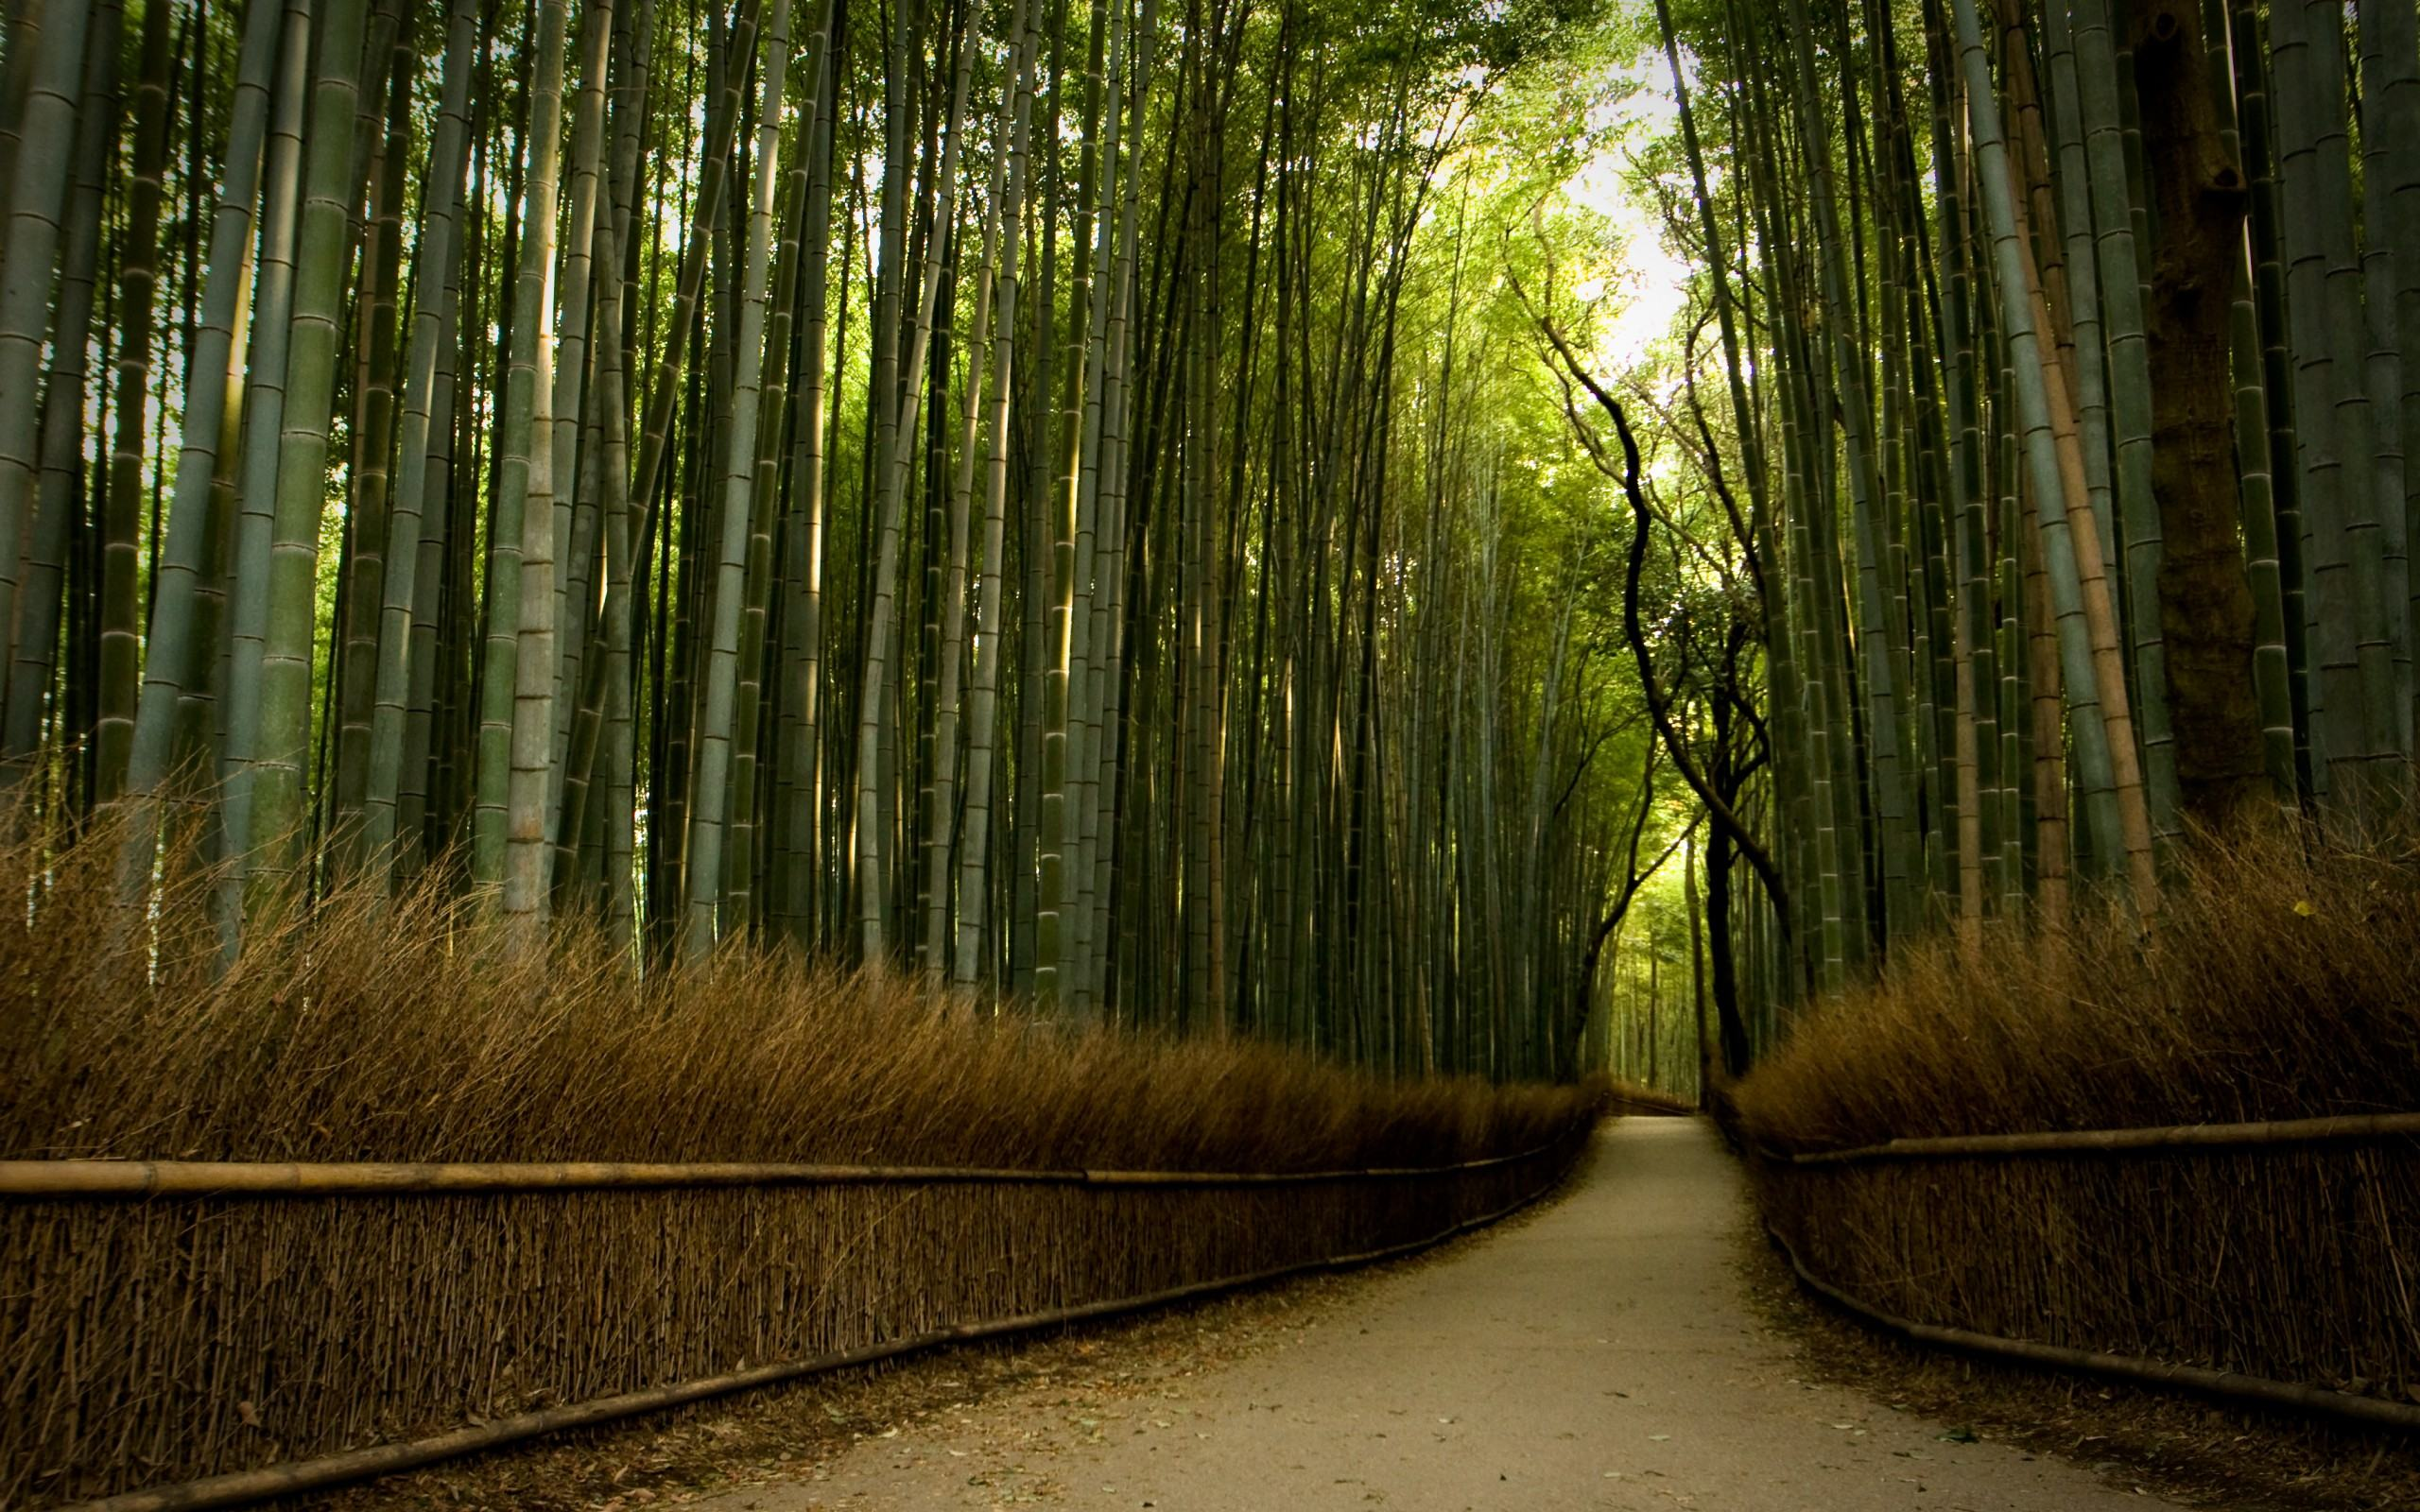 bamboo-forest-hd-645948.jpg